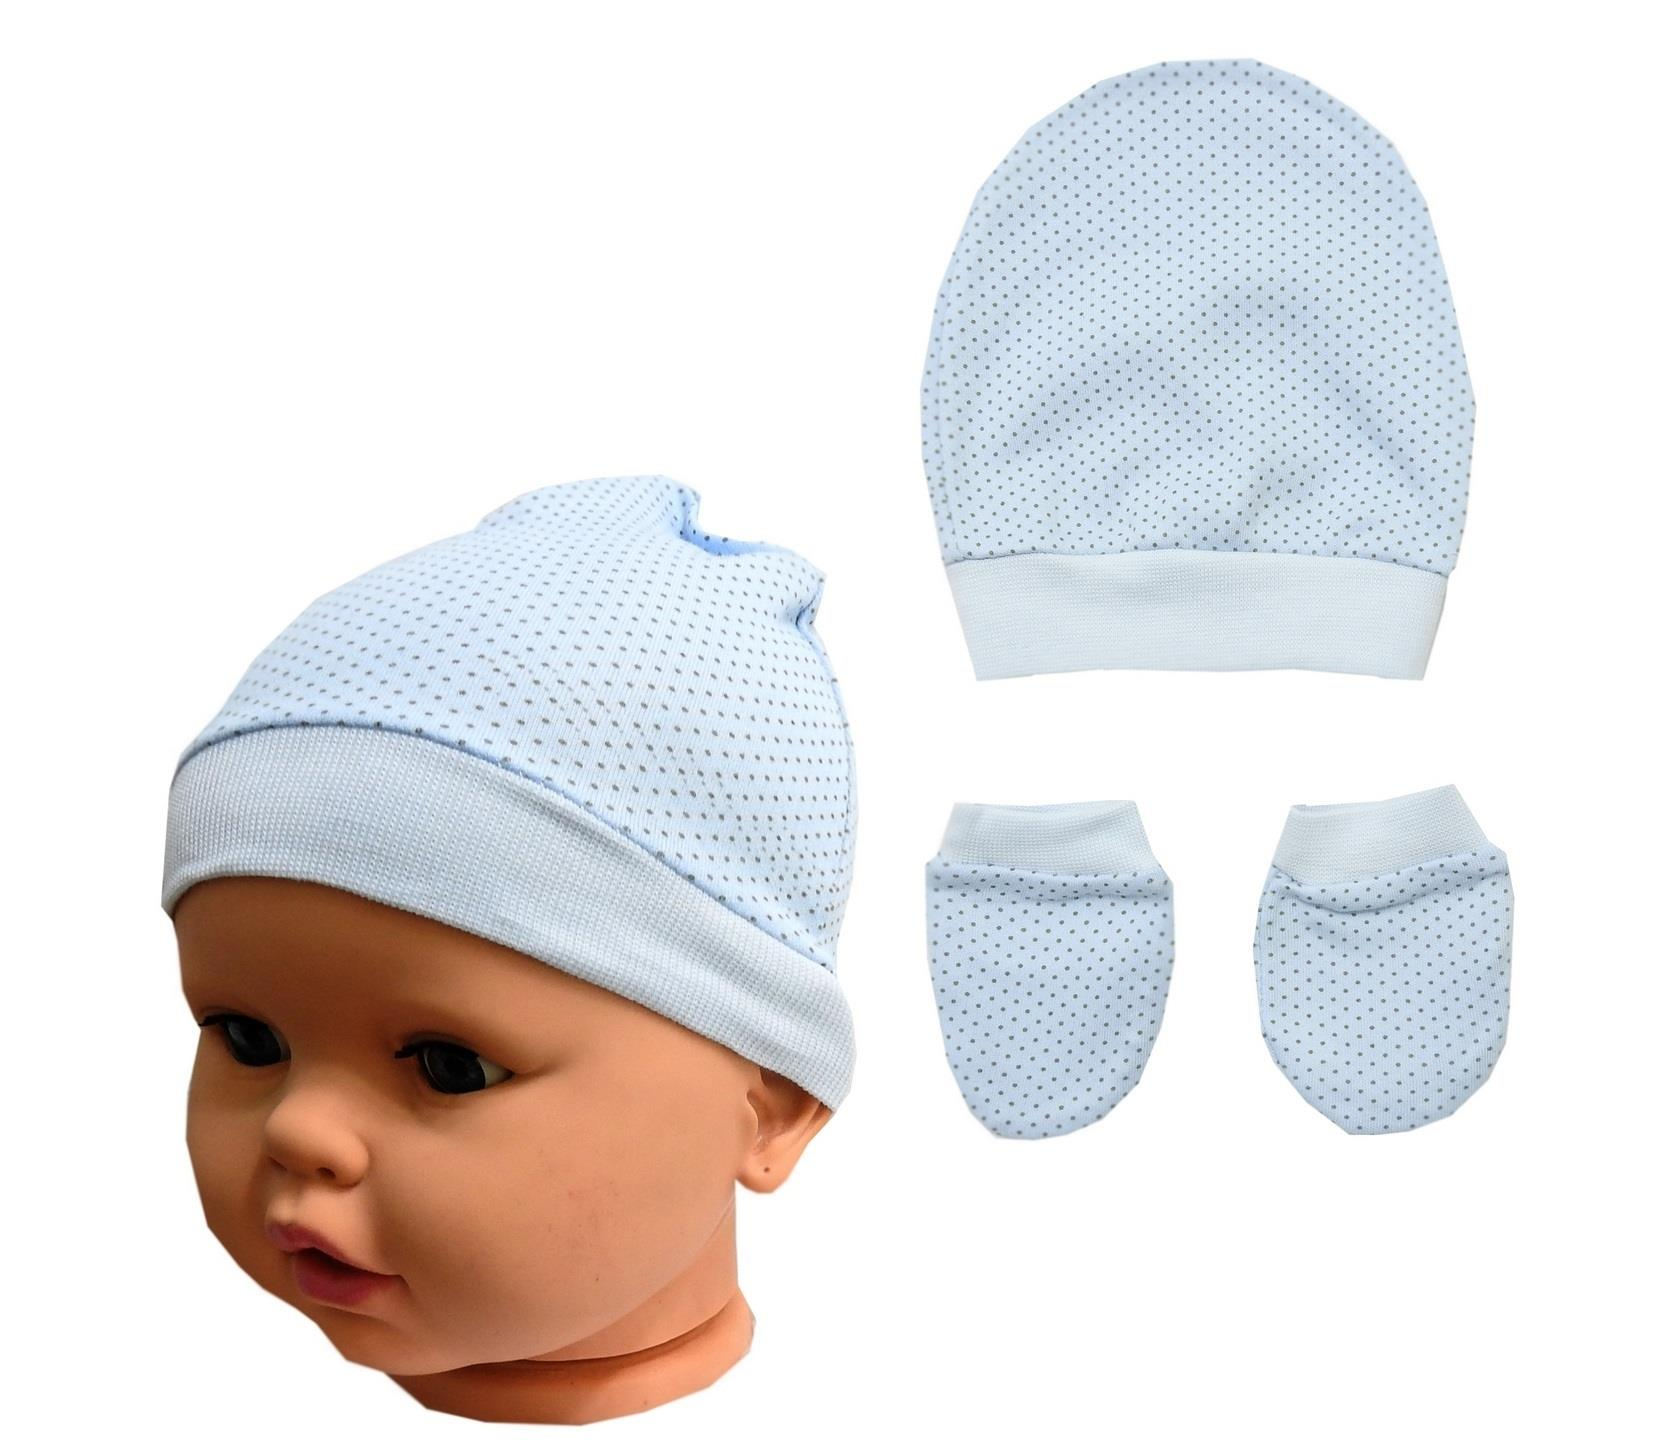 WHOLESALE BEANIE, GLOVES DOUBLE SET FOR BABY 12 PIECES IN PACKAGE